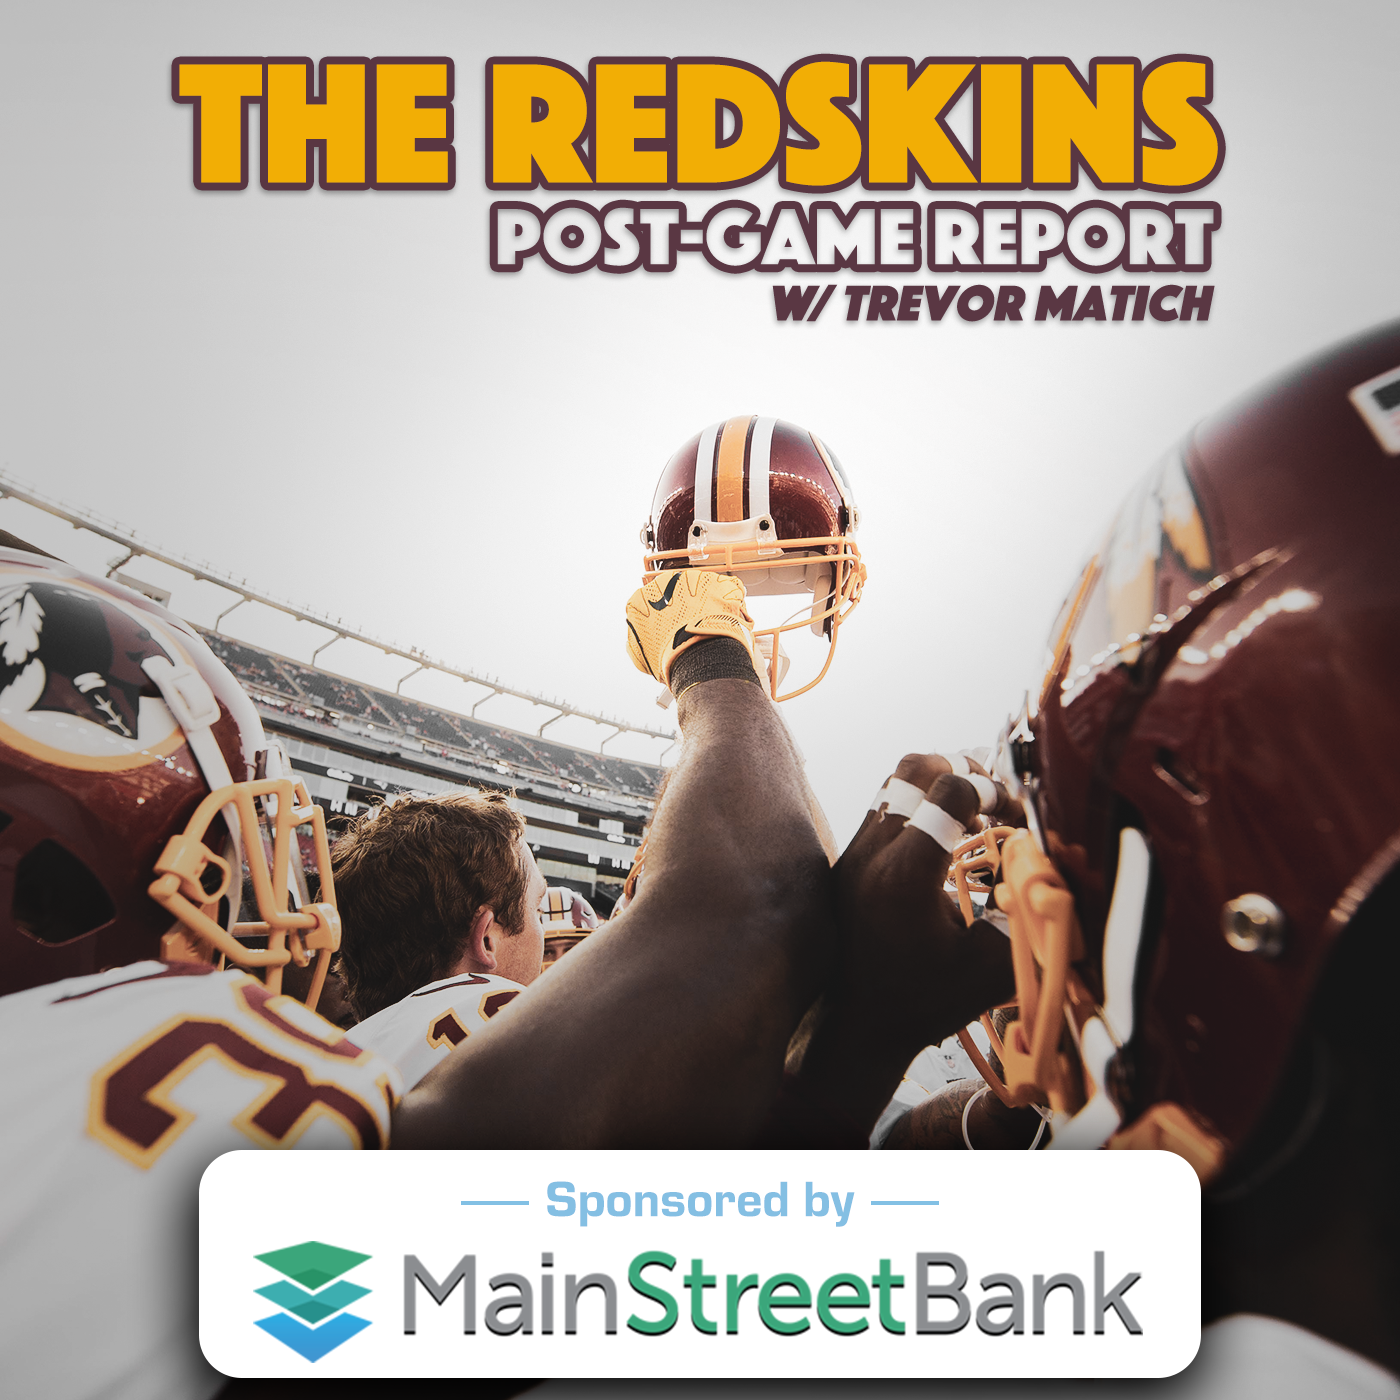 The Redskins Post-Game Report: Washington Redskins vs. New York Giants